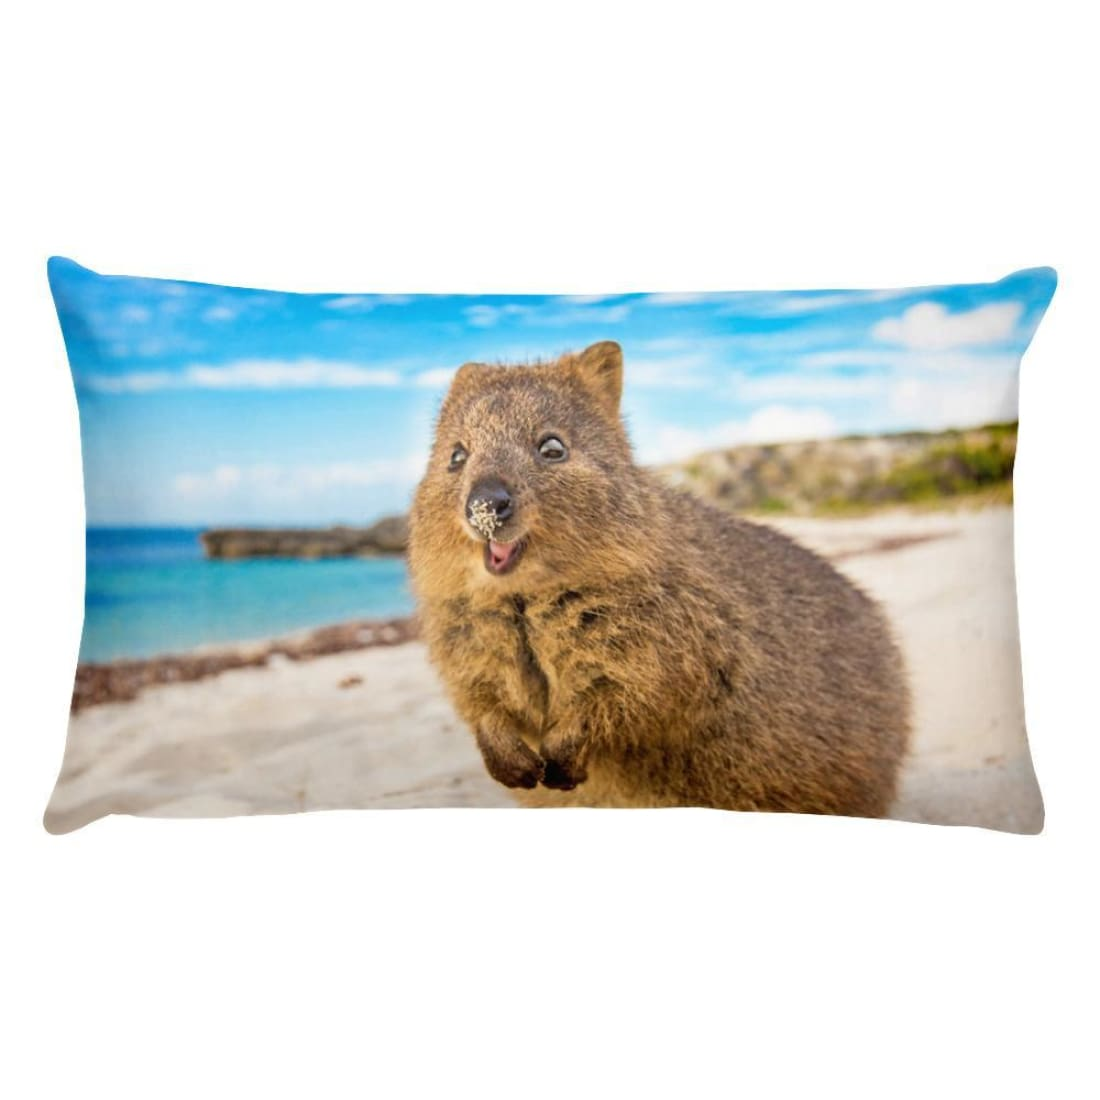 Quokka Smile Throw Pillow Case - Wide-Quokka Hub